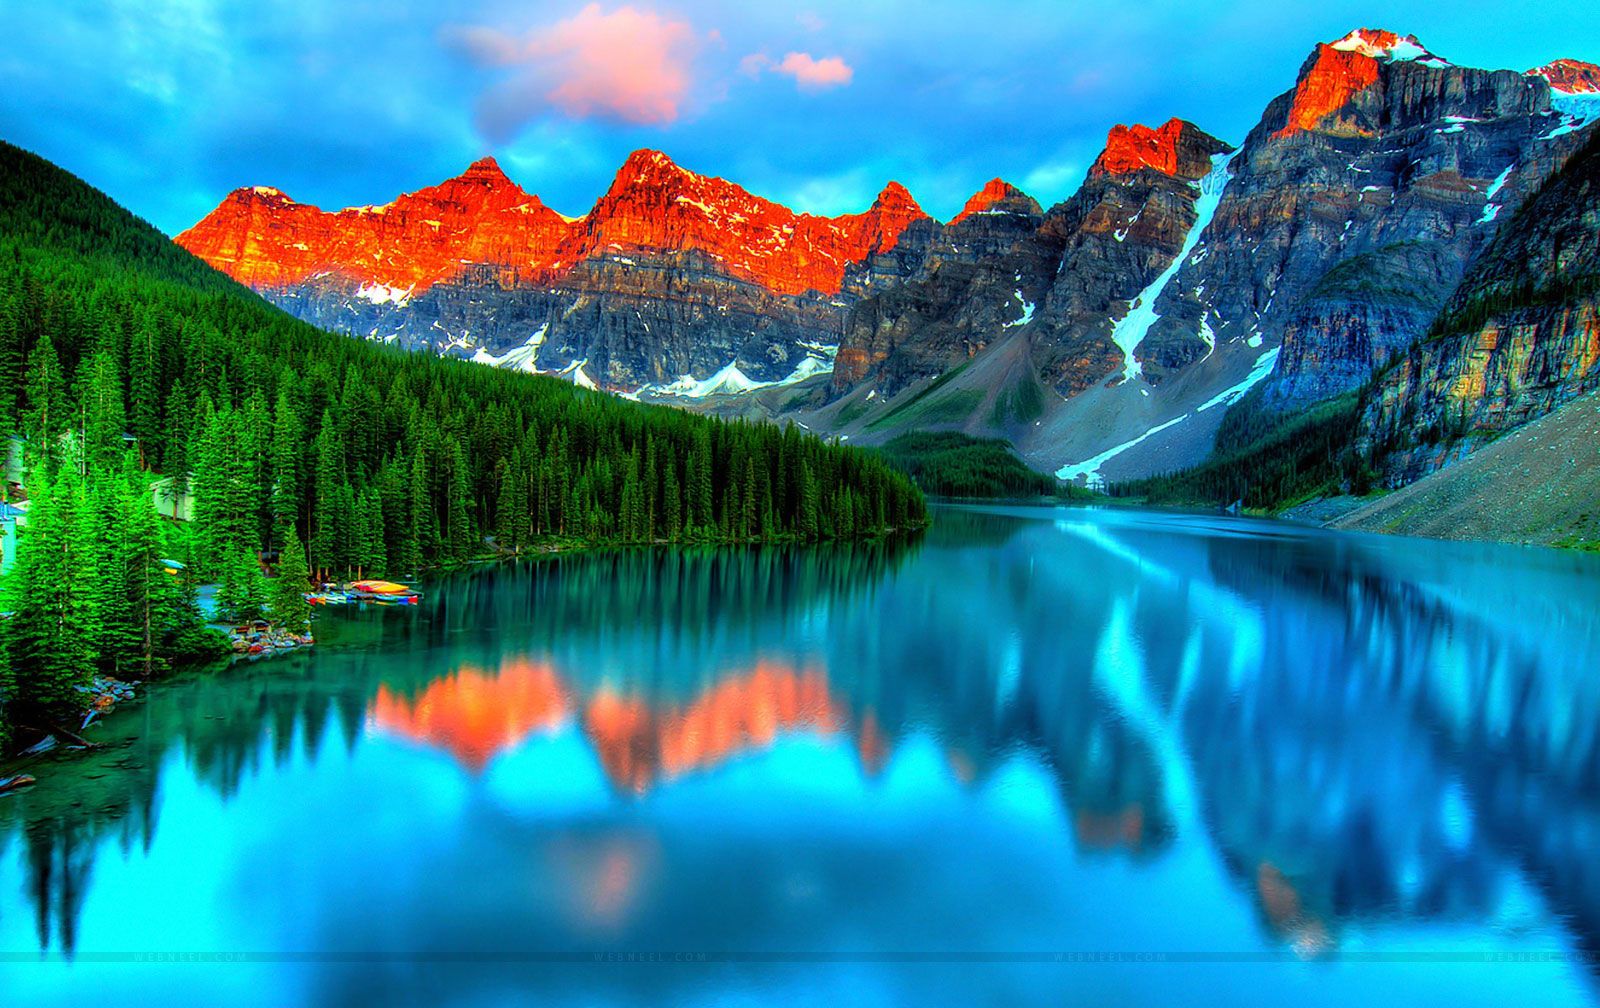 50 beautiful nature wallpapers for your desktop mobile and tablet - hd